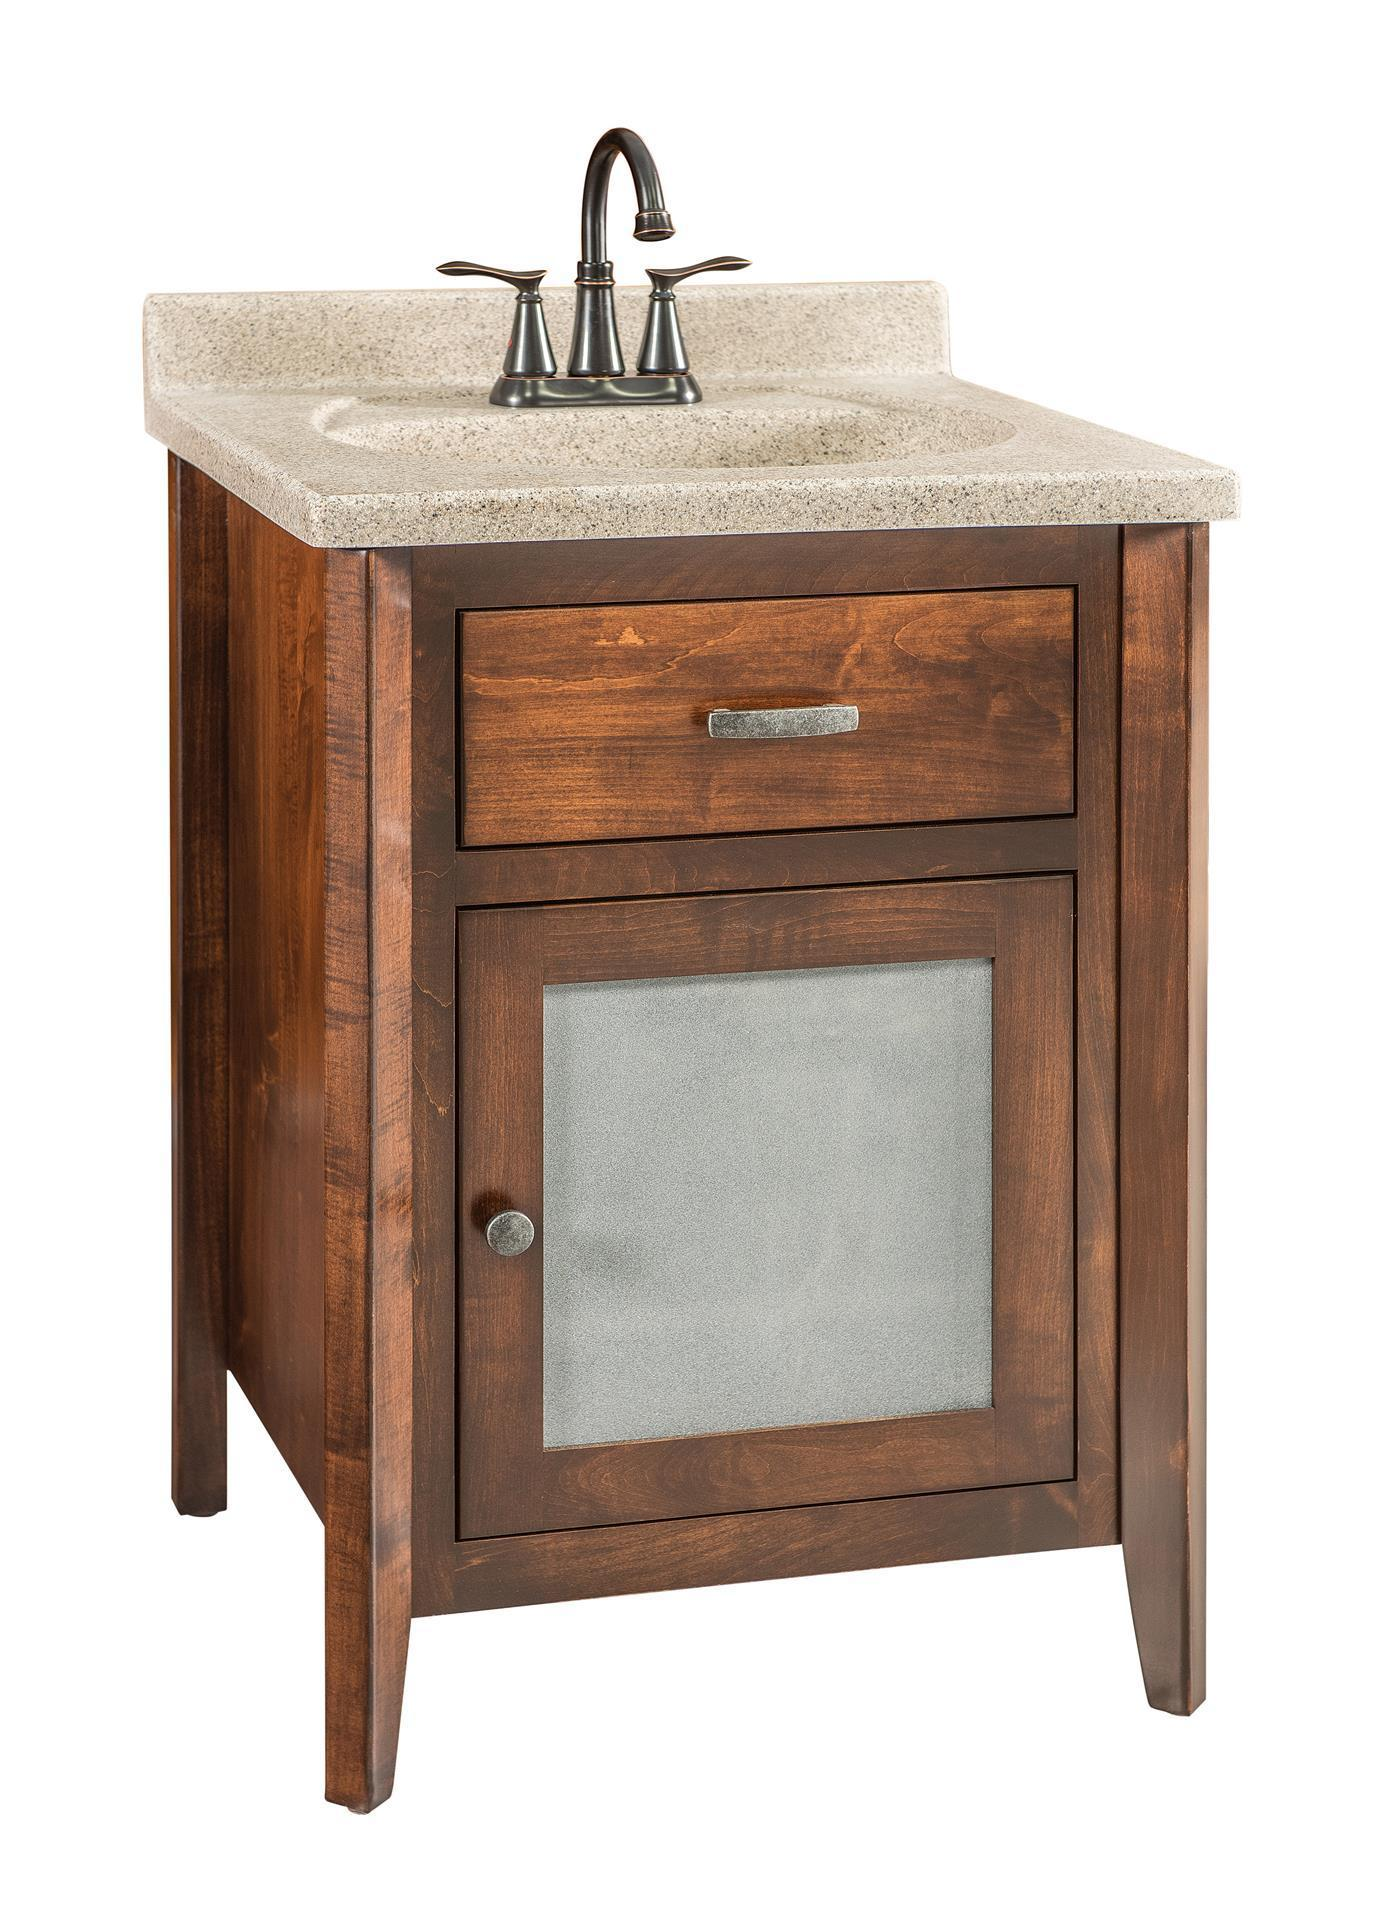 24 Quot Solid Wood Bathroom Vanity From Dutchcrafters Amish